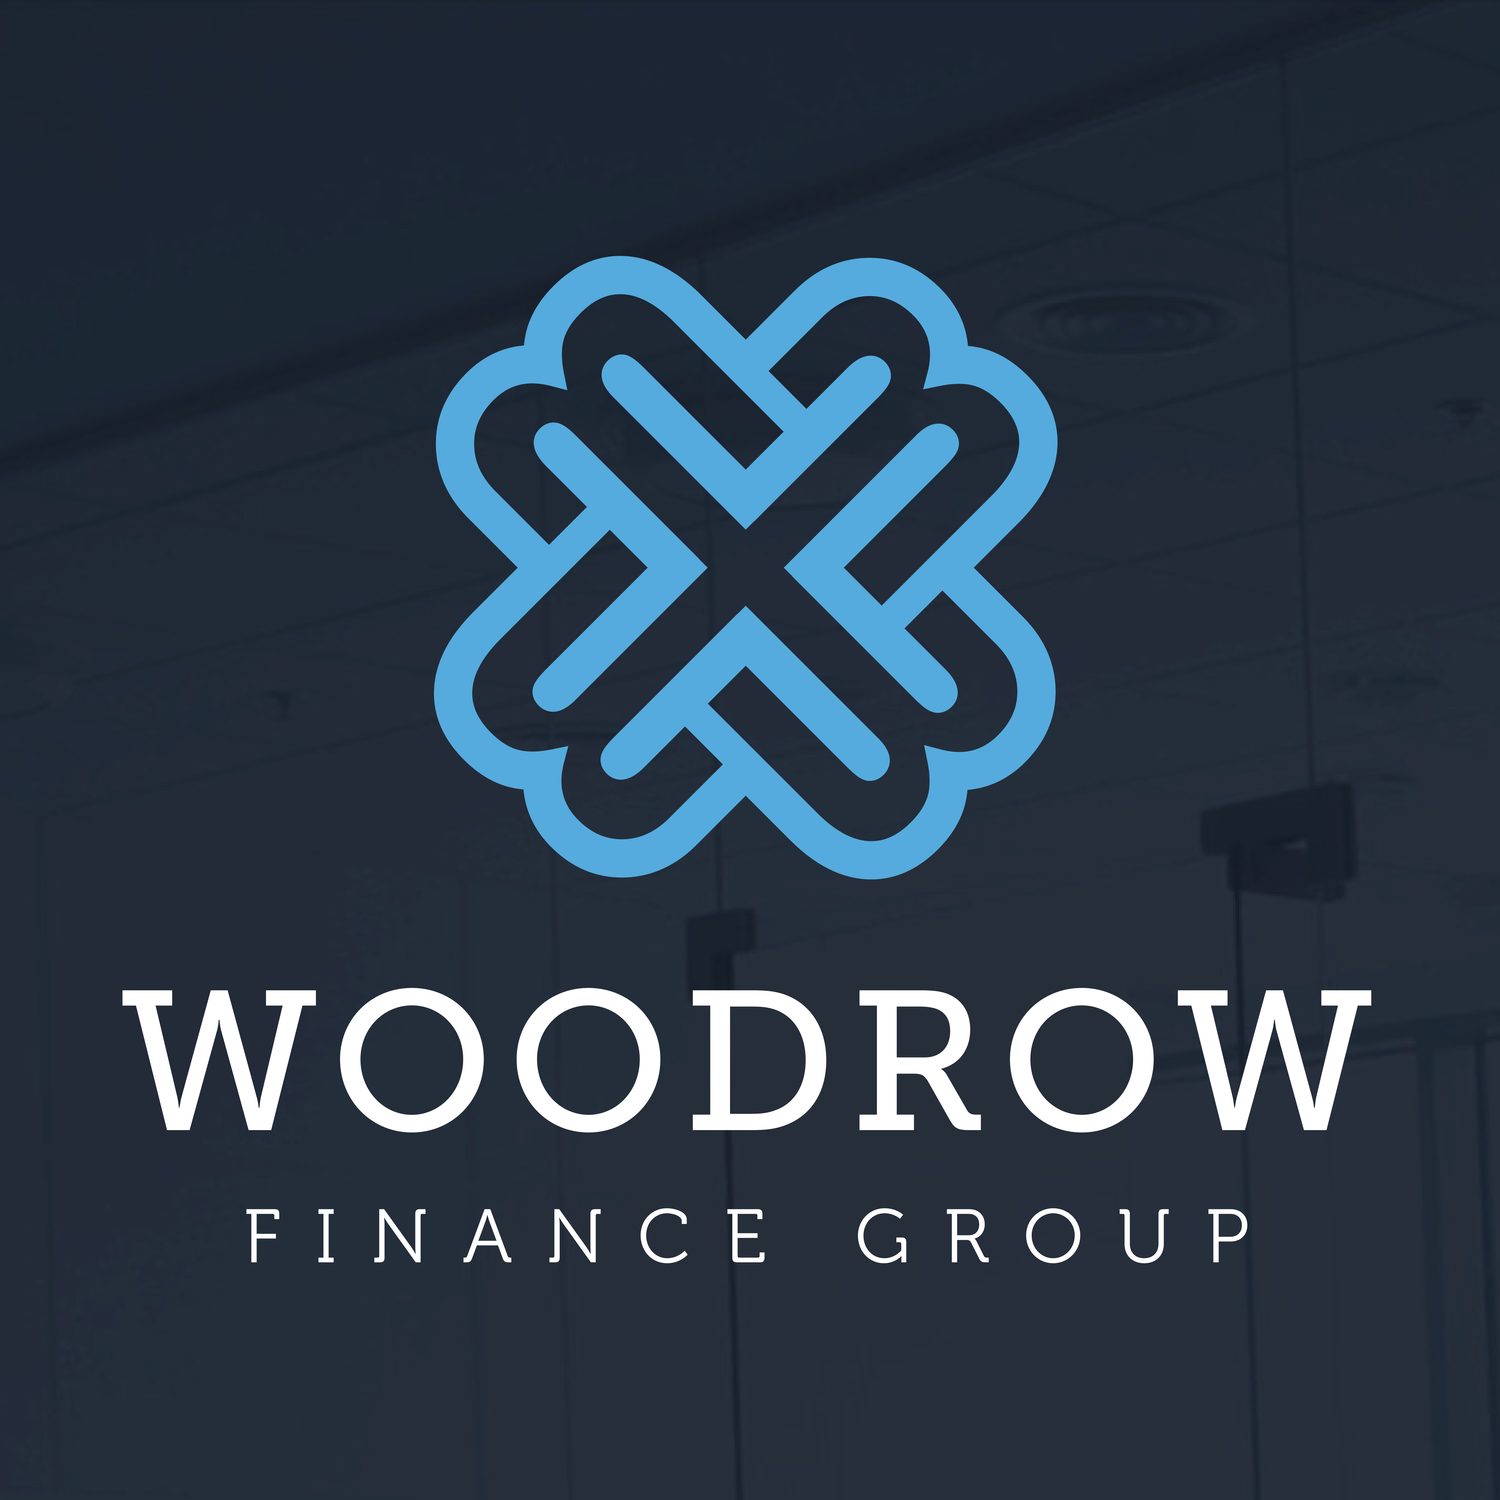 Woodrow Finance Group